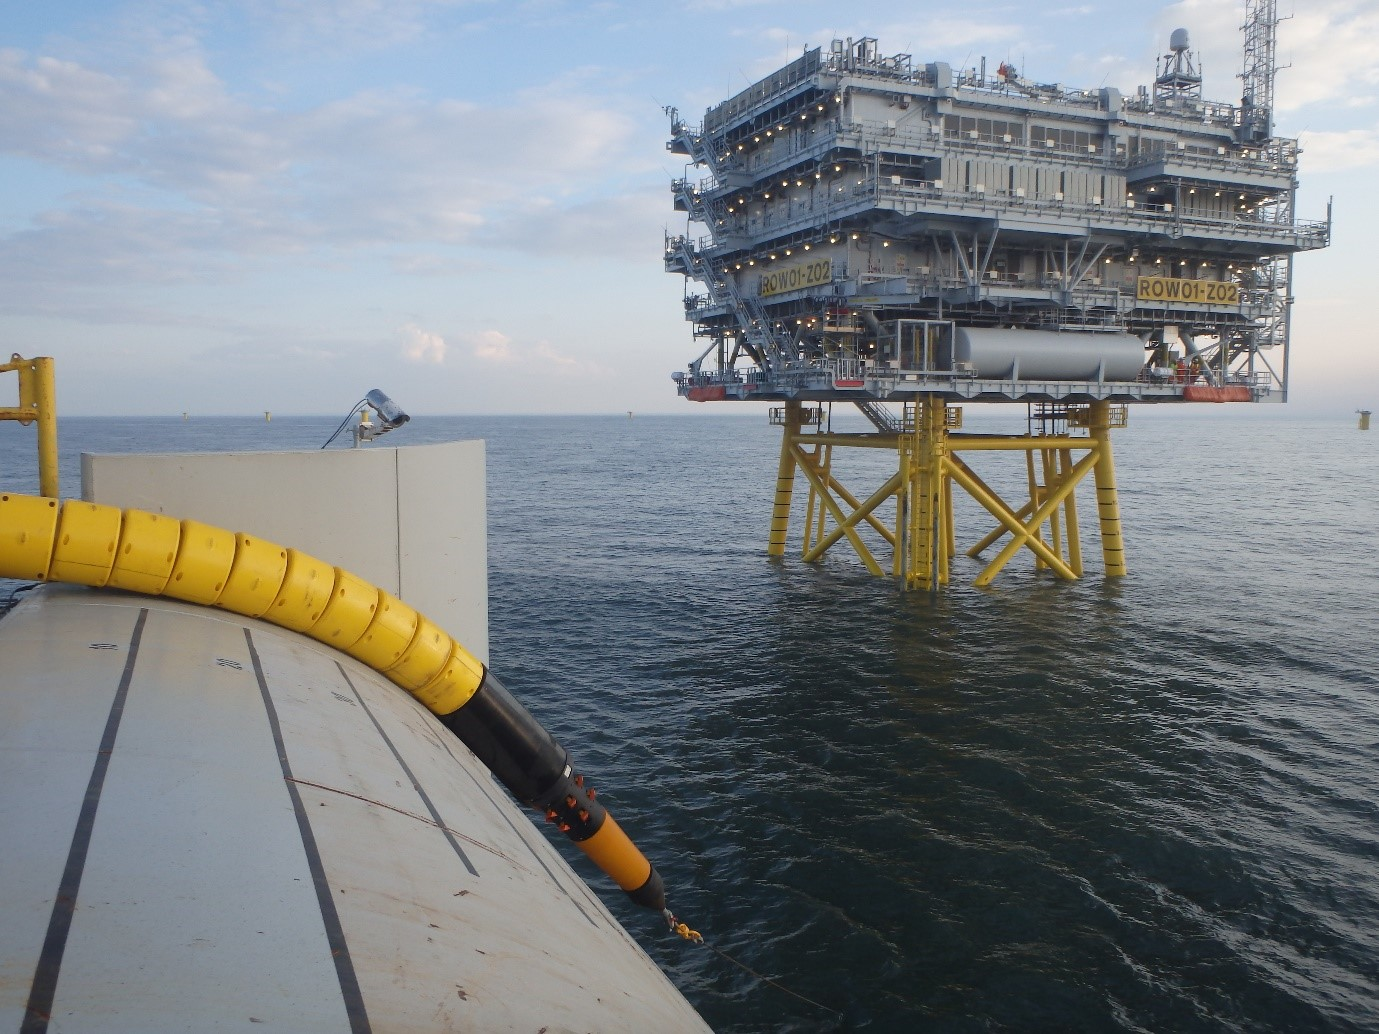 Image Caption: Tekmar Cable Protection System being installed on Ørsted's Race Bank offshore wind farm